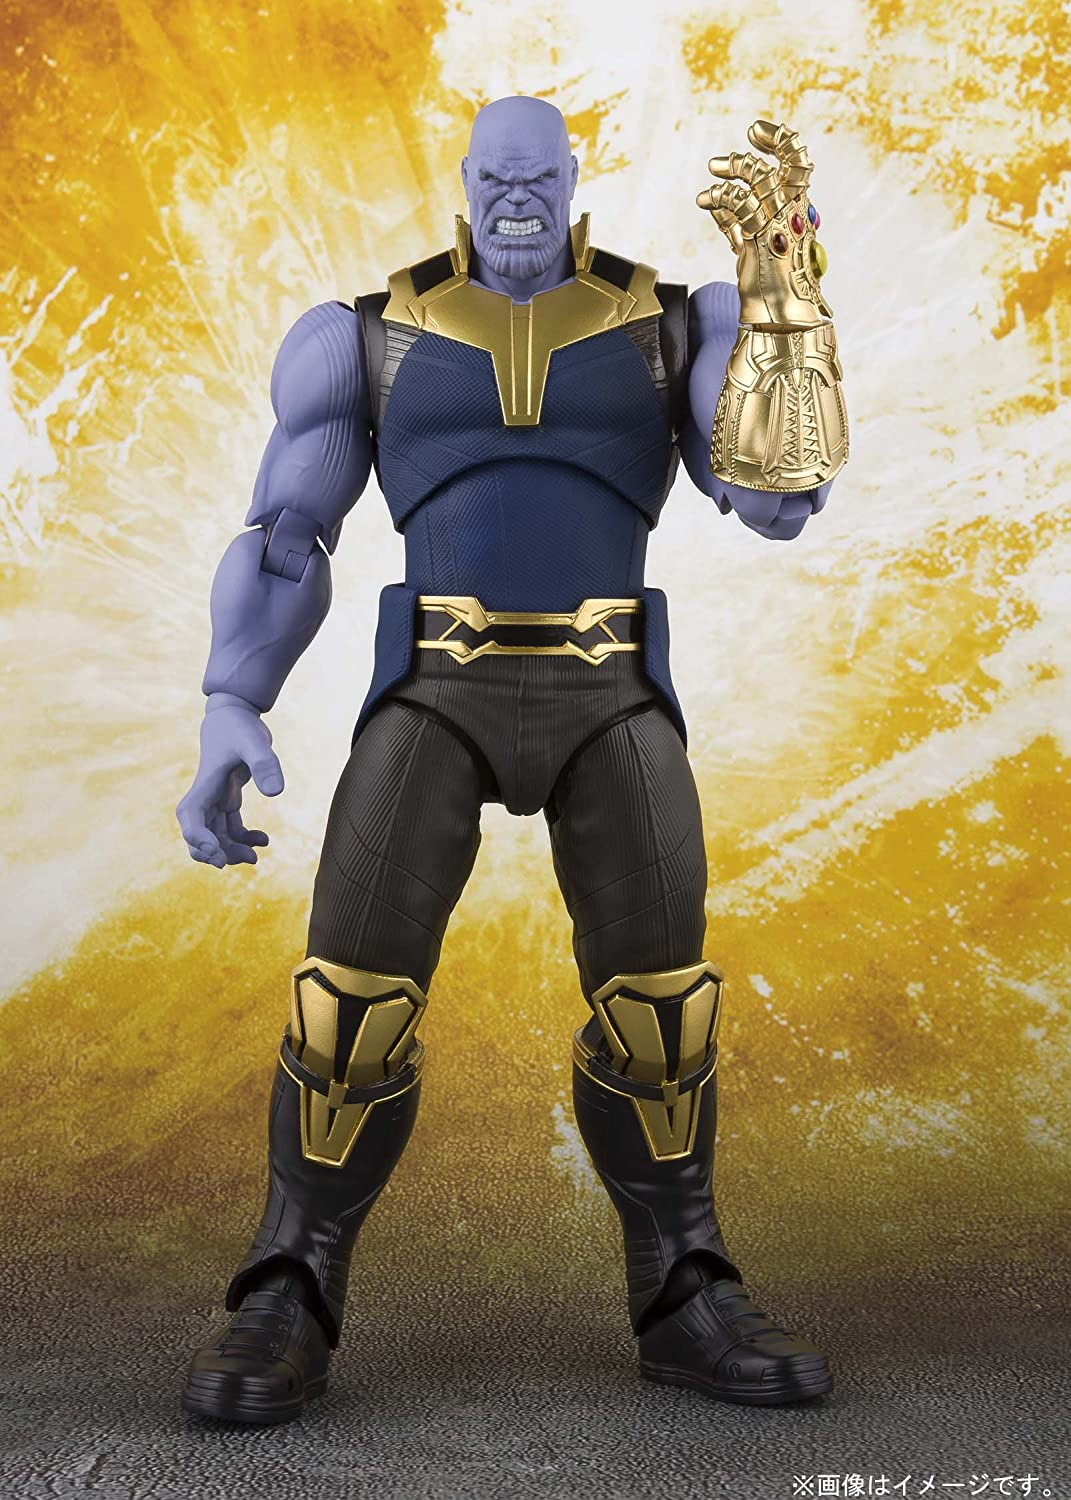 S.H.Figuarts Figures Avengers Infinity Wars Movie Thanos (Final Battle Edition)